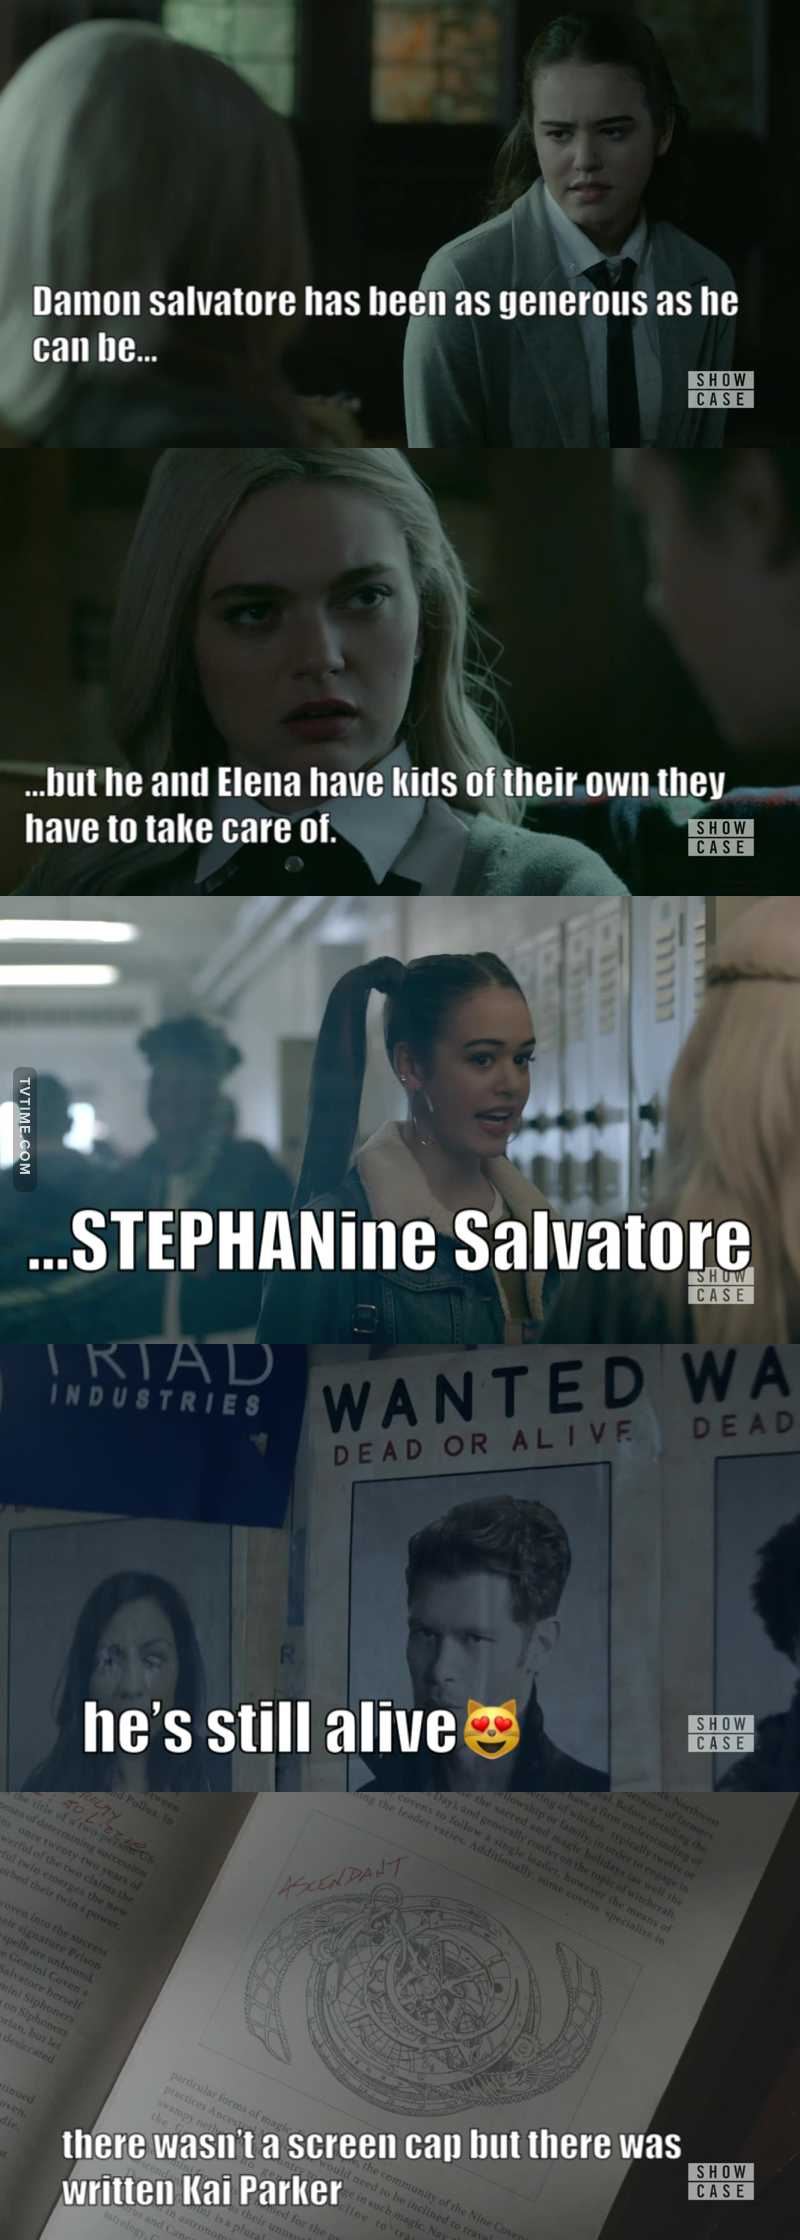 guys my TVD feelings😻  'Damon Salvatore has been generous as he can be but he and Elena have kids of their own they have to take care of' STEPHANie i'm crying 😭  Klaus ❤️  MalaKAI Parker😻😻😻😻😻😻